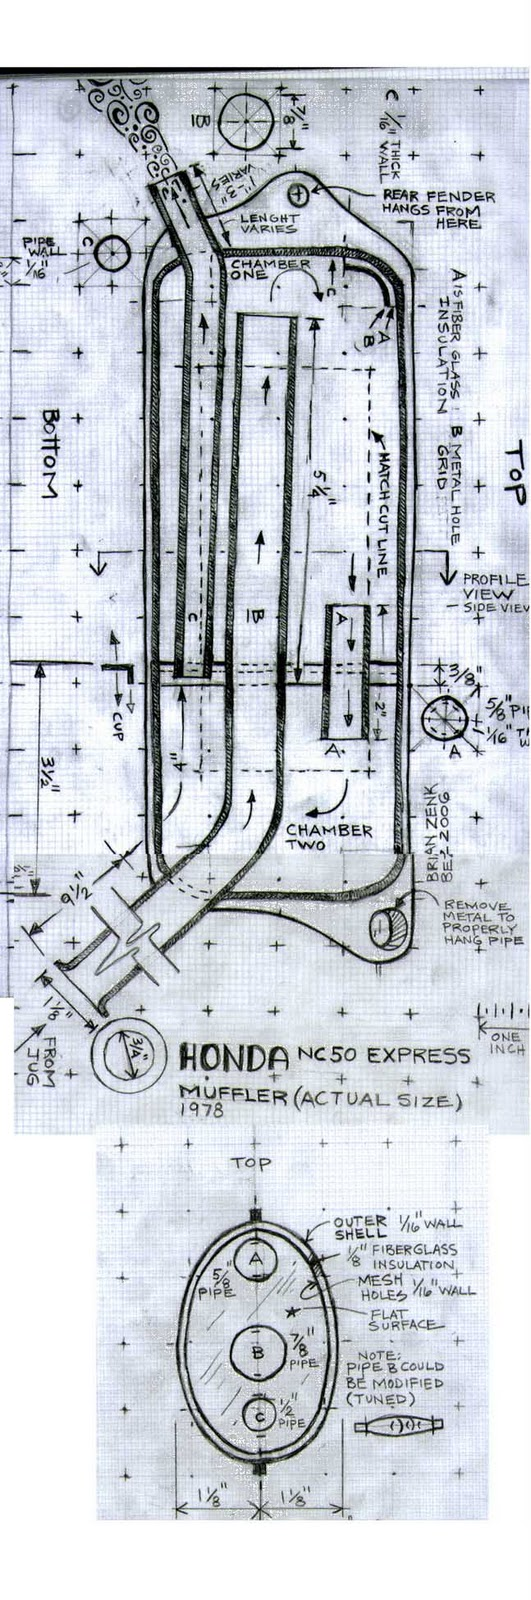 WRG-5461] 1982 Honda Express Nc50 Wiring Diagram on